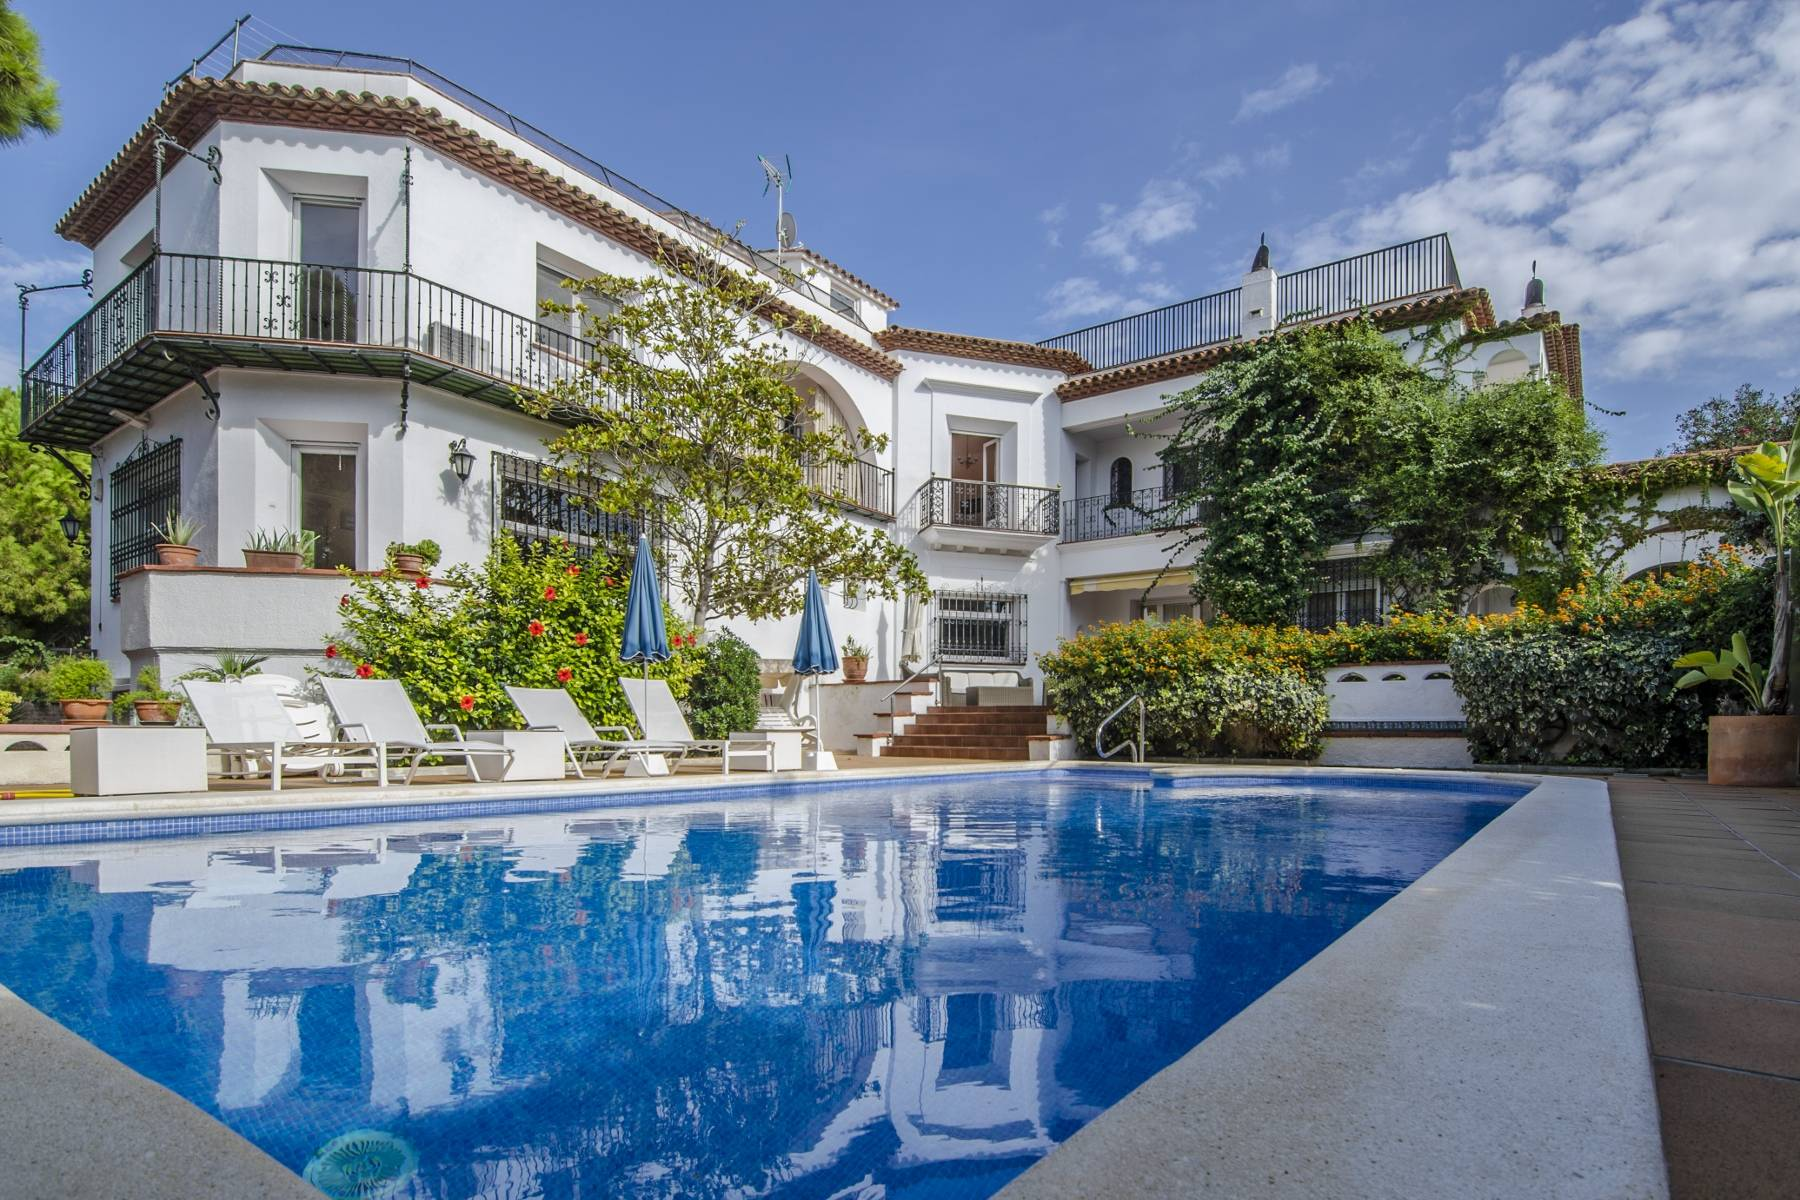 Single Family Homes for Sale at Wonderful Seafront Property in Sitges Sitges, Barcelona 08870 Spain